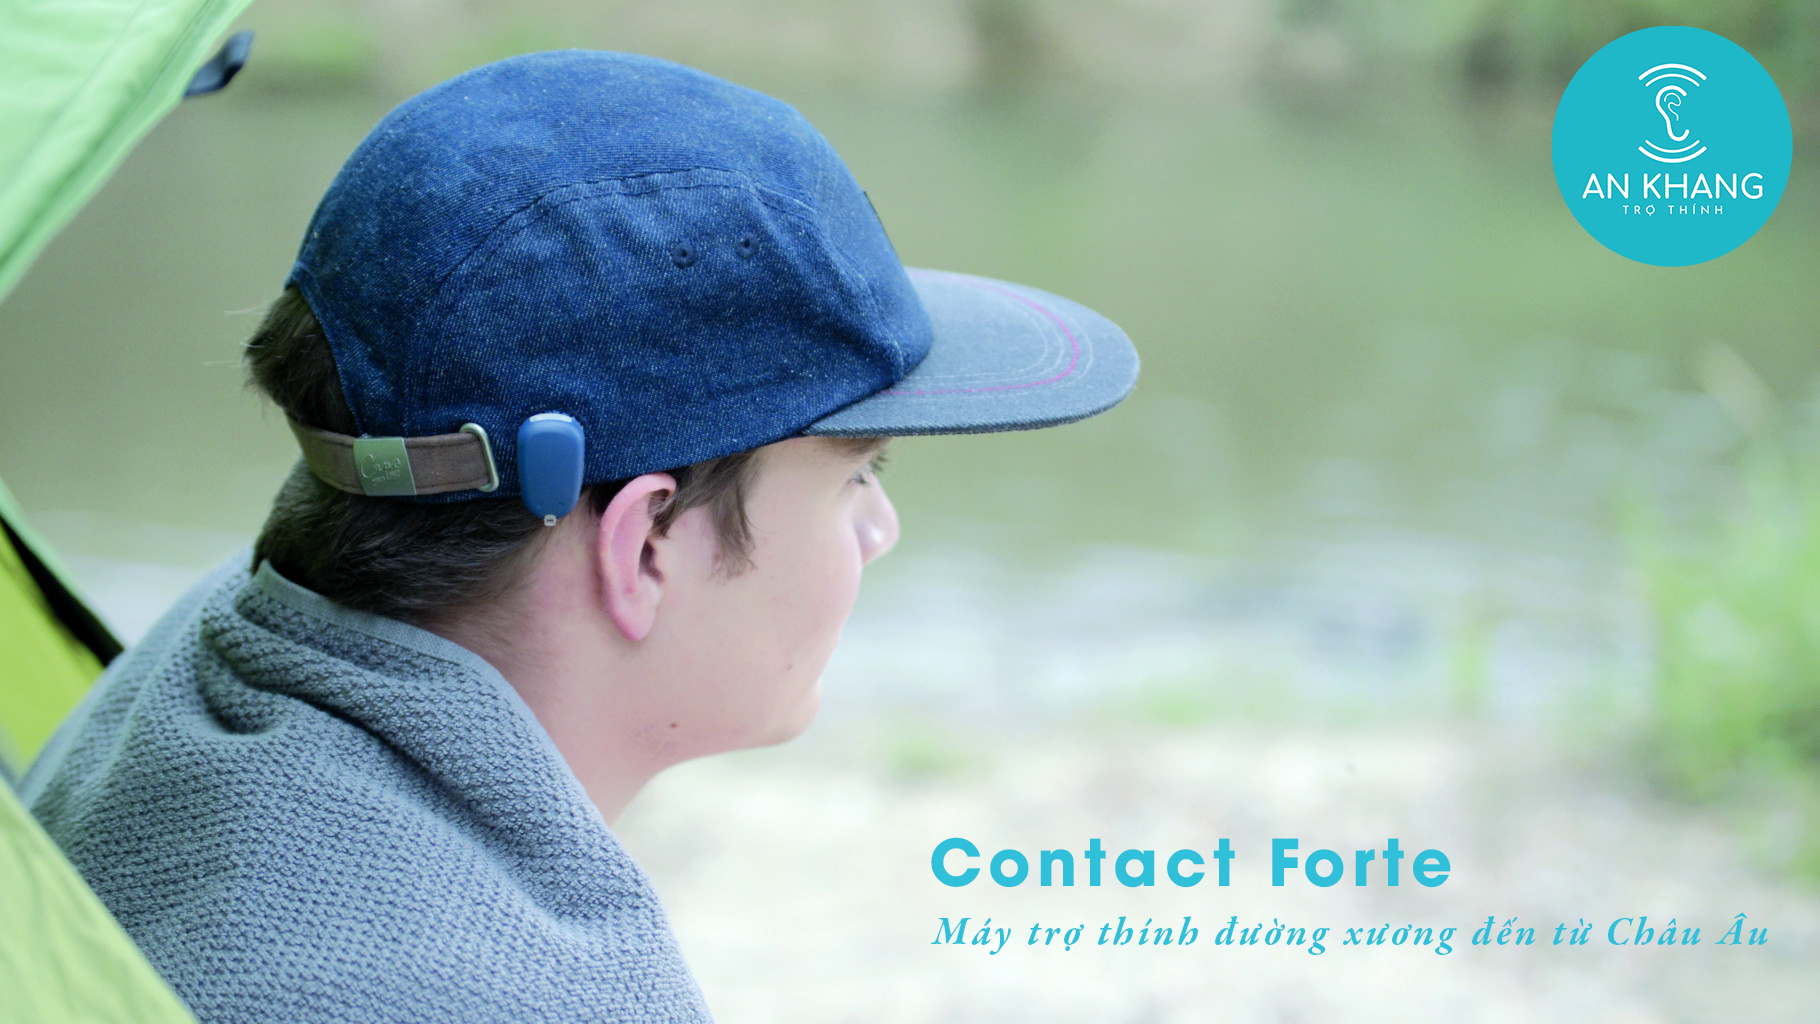 contact forte